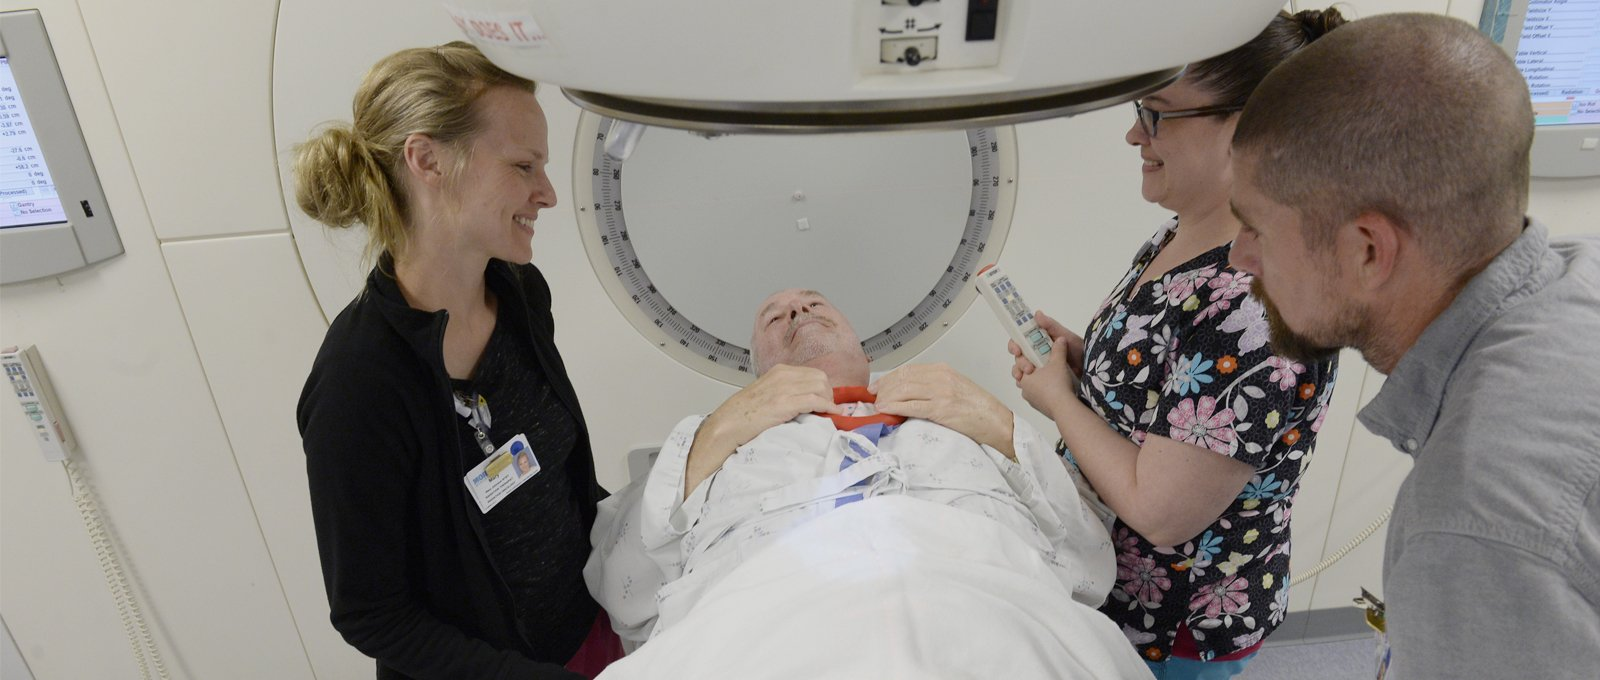 cancer patient getting a CT scan with friendly staff helping